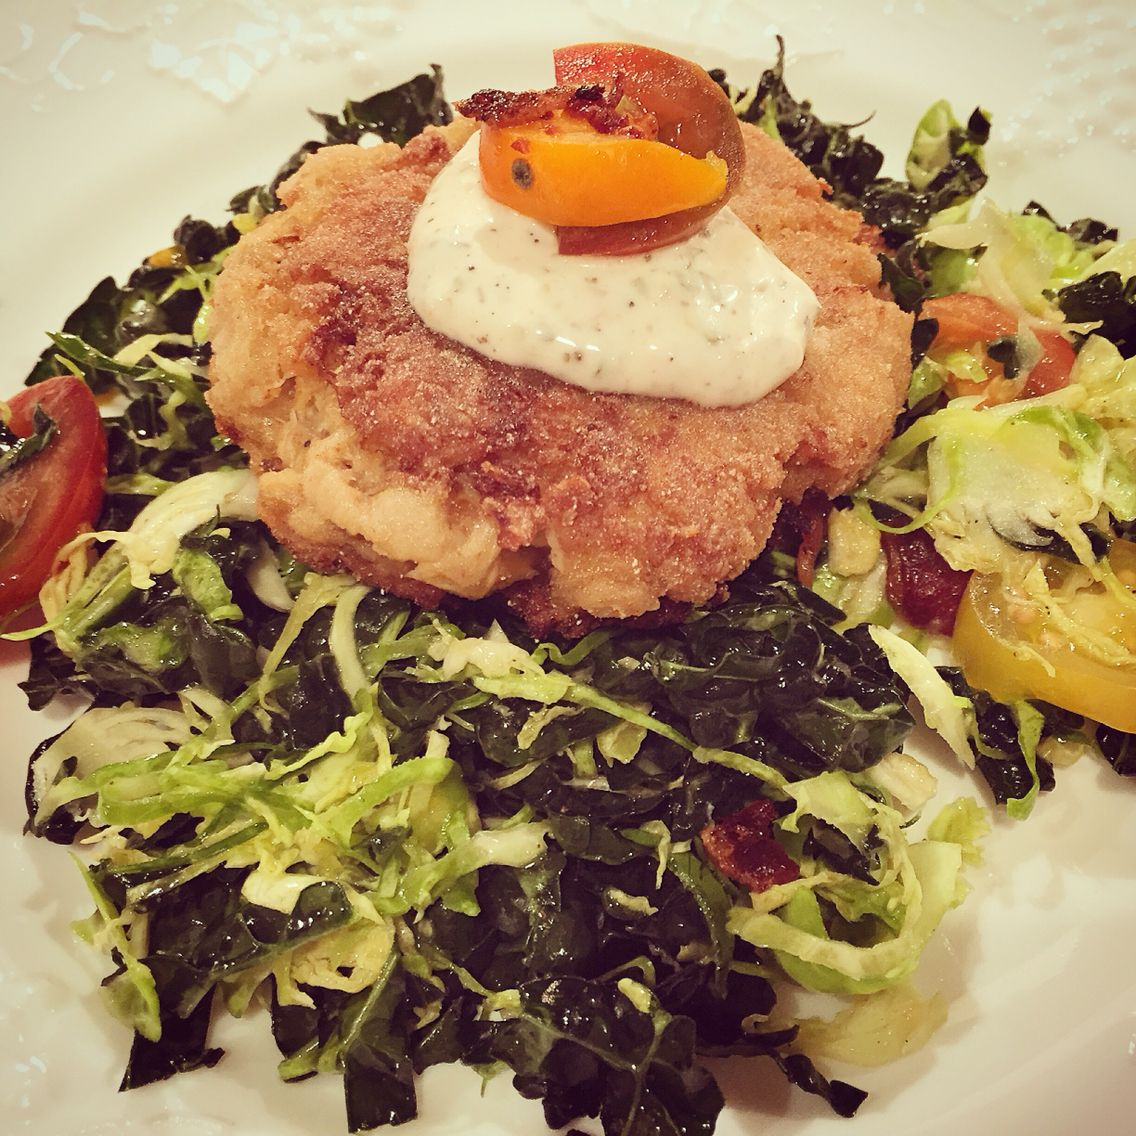 Jamie Olivers Ultimate Crab Cakes From His New Cookbook Comfort